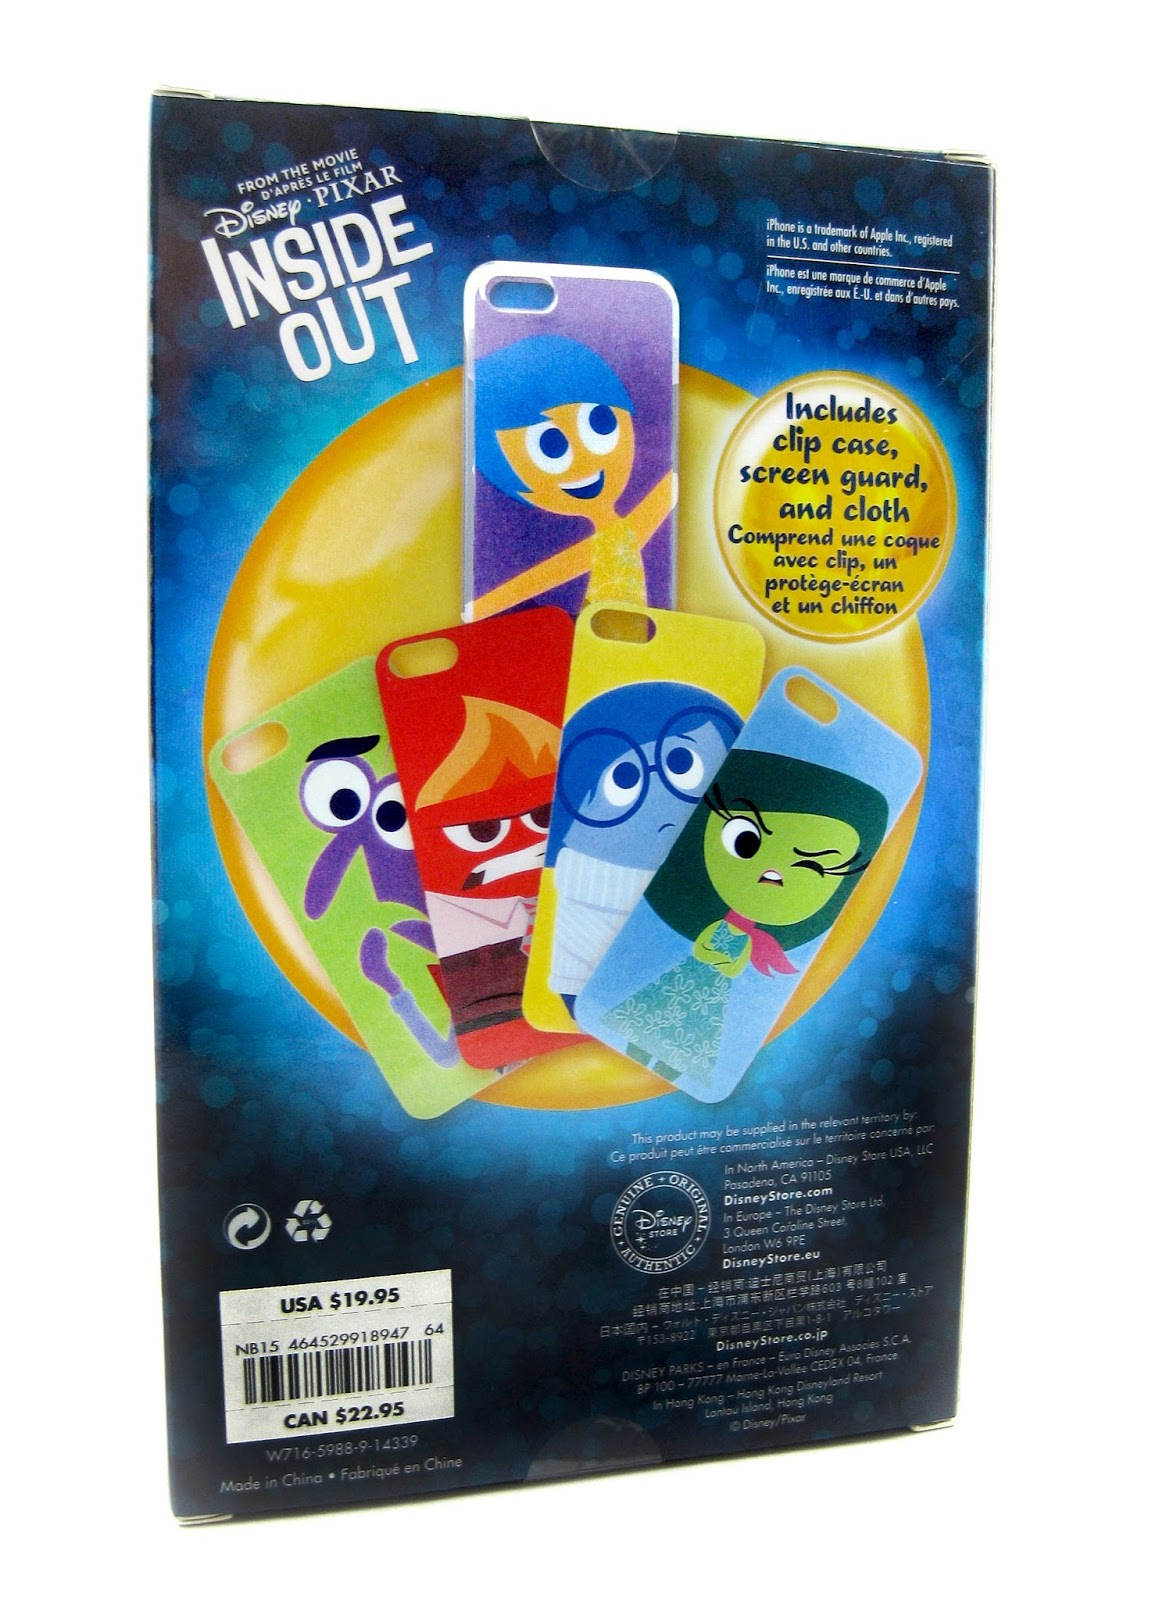 dan the pixar fan inside out interchangeable iphone case disney store exclusive. Black Bedroom Furniture Sets. Home Design Ideas